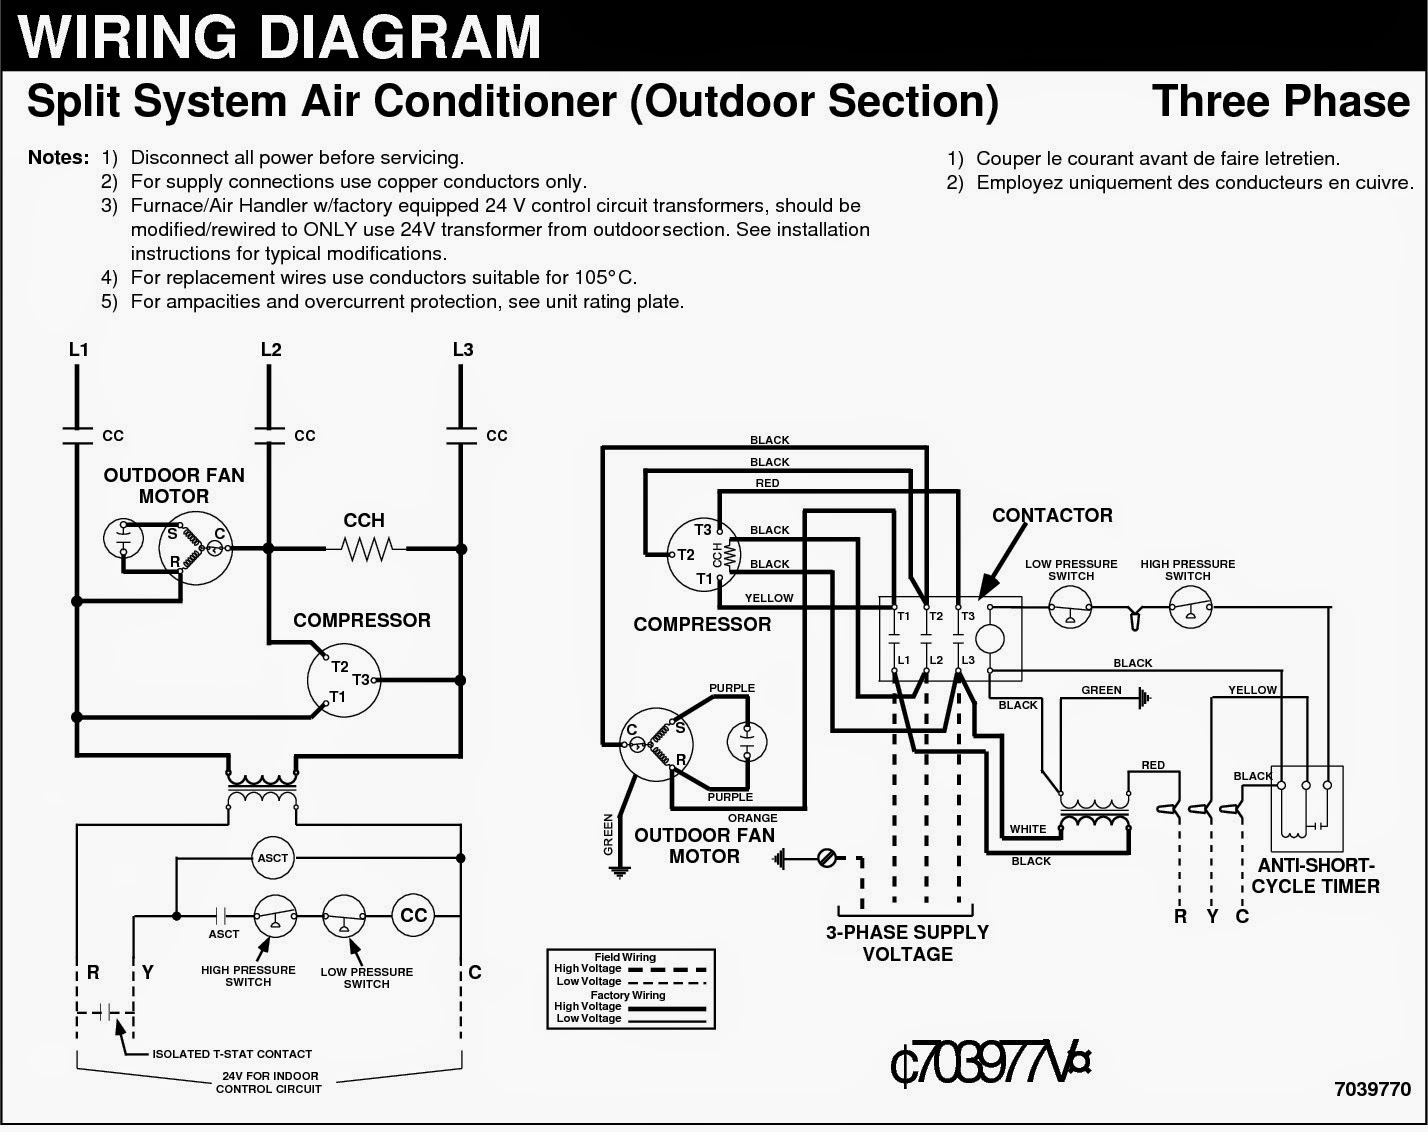 electrical wiring diagrams for air conditioning systems part two rh electrical knowhow com fujitsu split system wiring diagram fujitsu split system wiring diagram